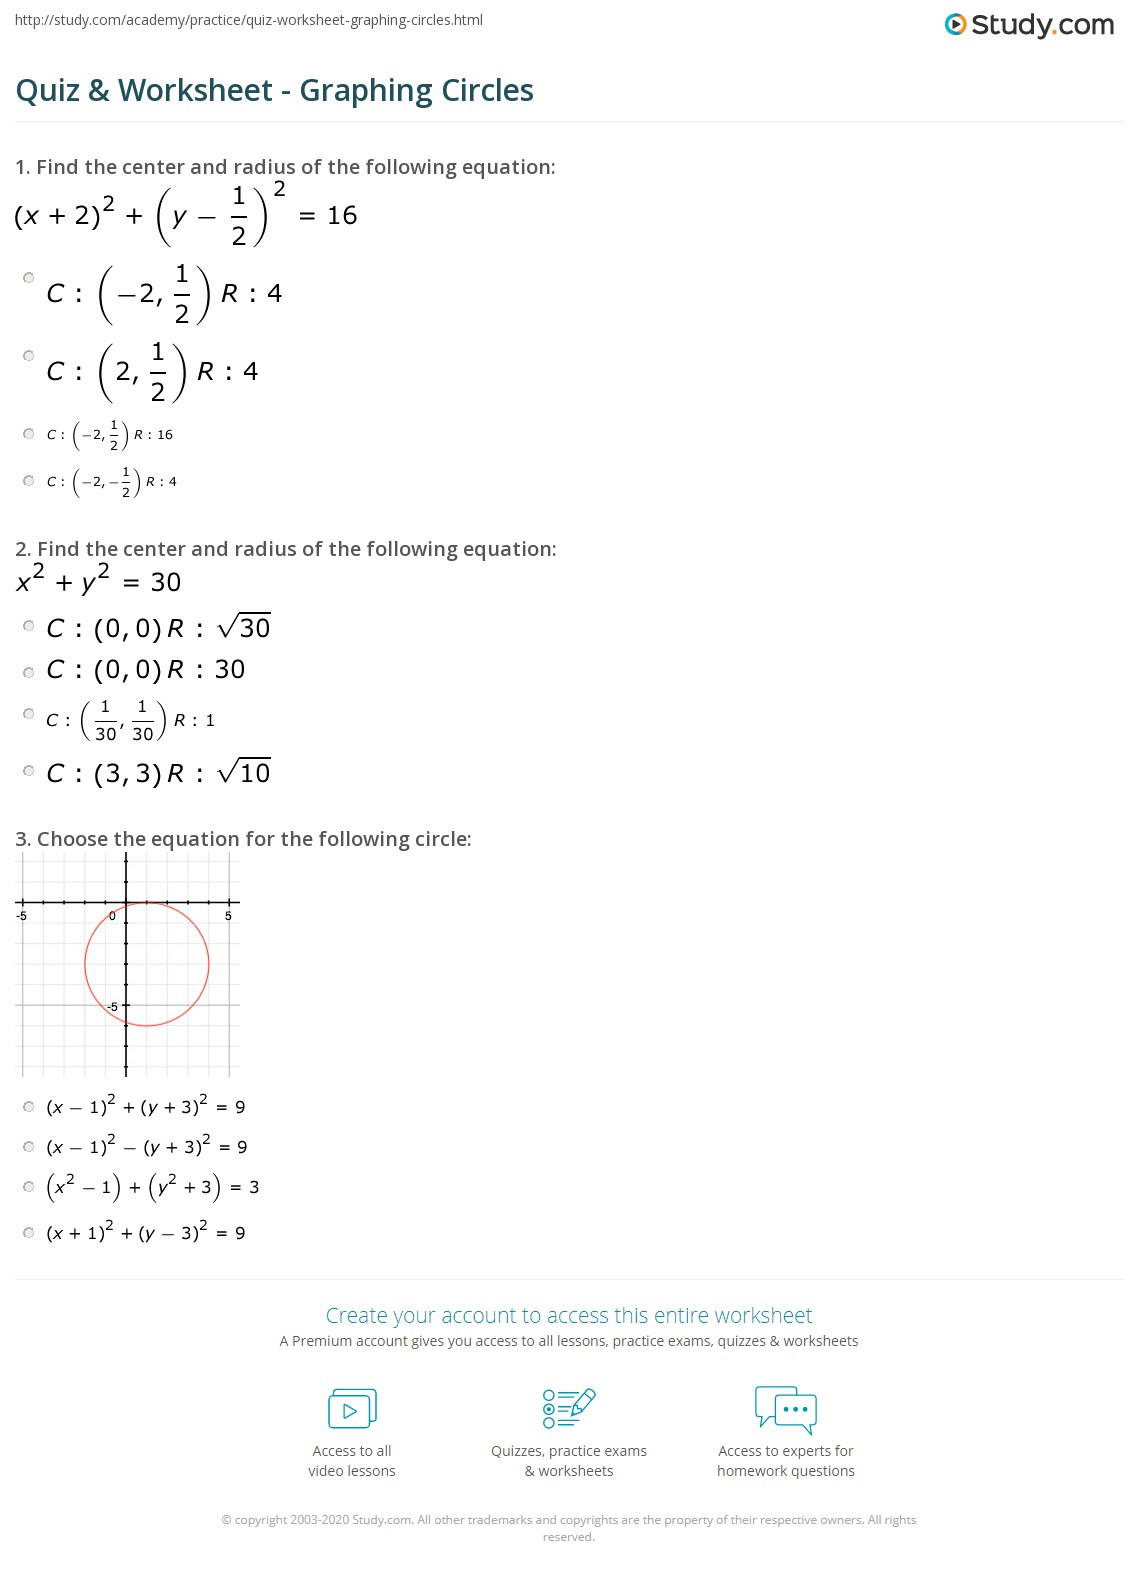 worksheet Writing Equations Of Circles printables graphing circles worksheet gozoneguide thousands of quiz study com print identifying the formula center and